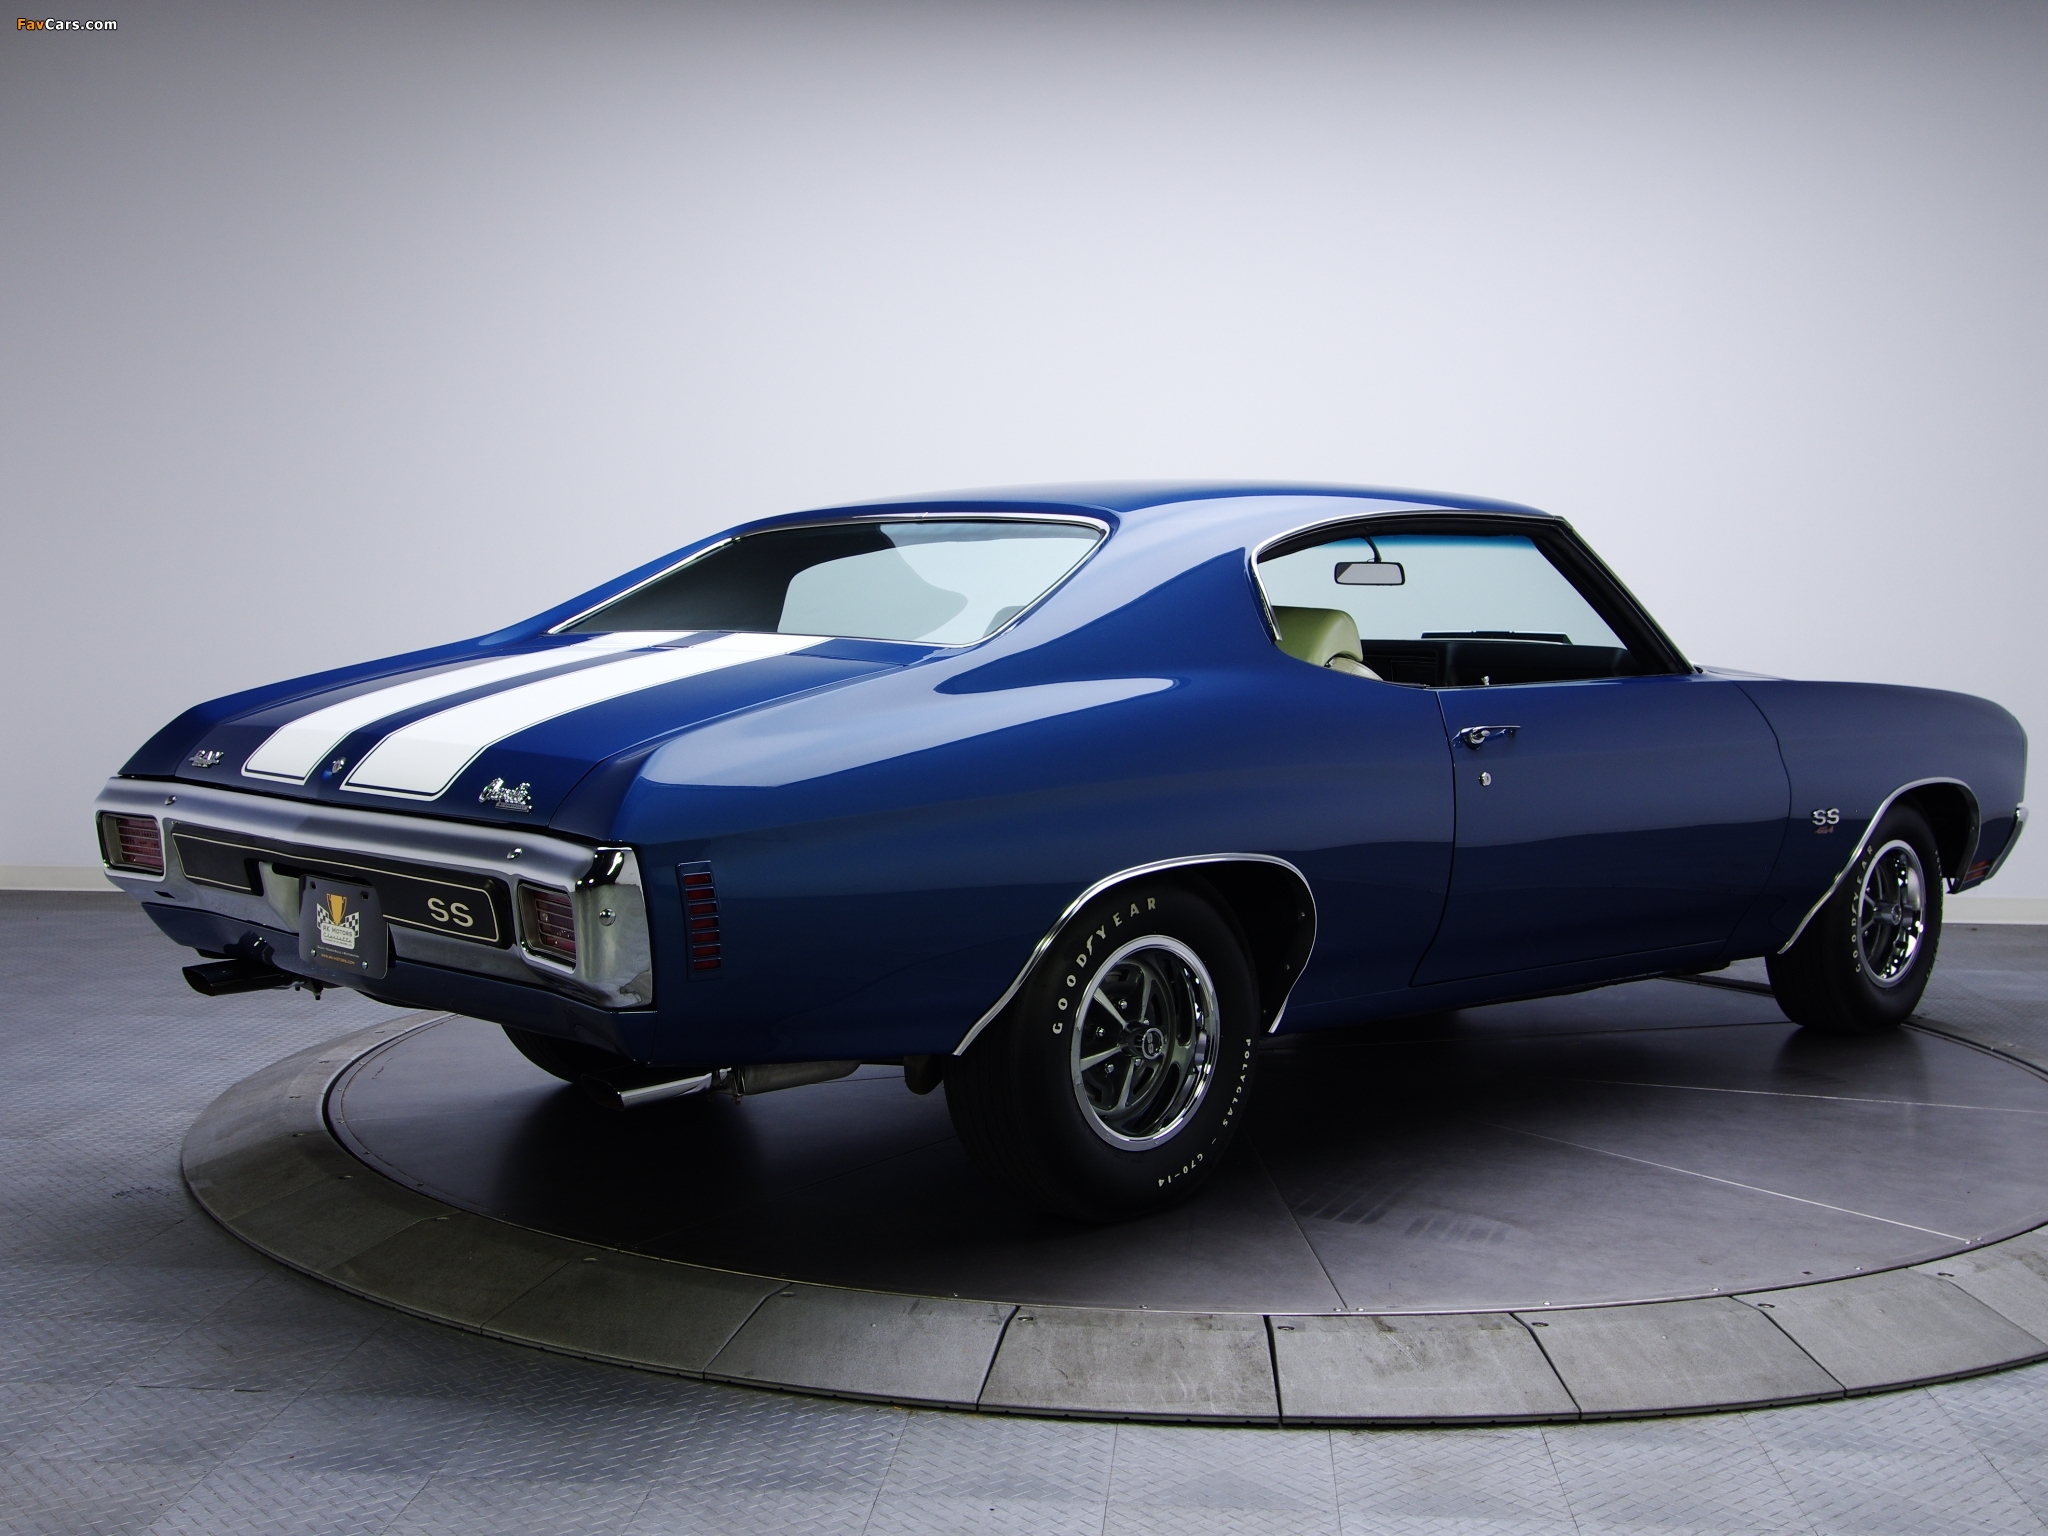 Chevrolet Chevelle SS 454 LS6 Hardtop Coupe 1970 wallpapers 2048x1536 2048x1536